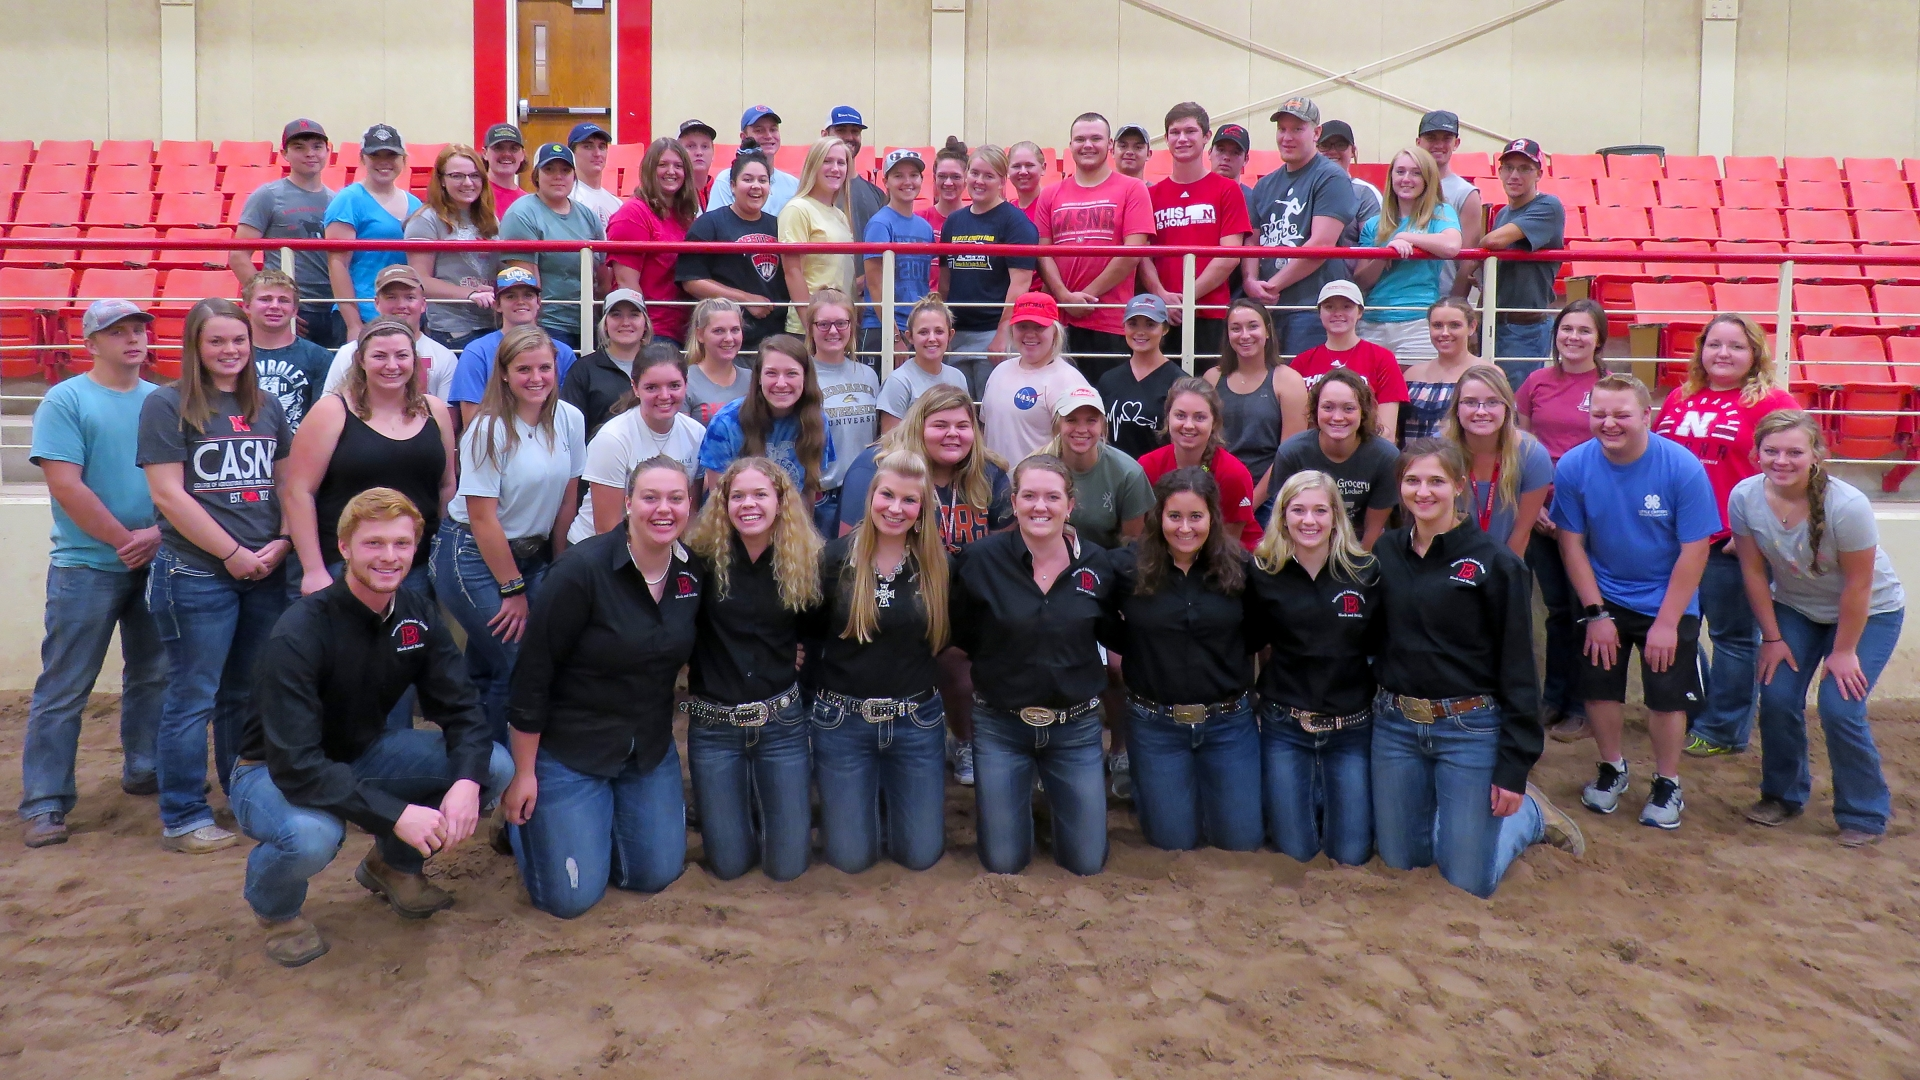 Block and Bridle team picture